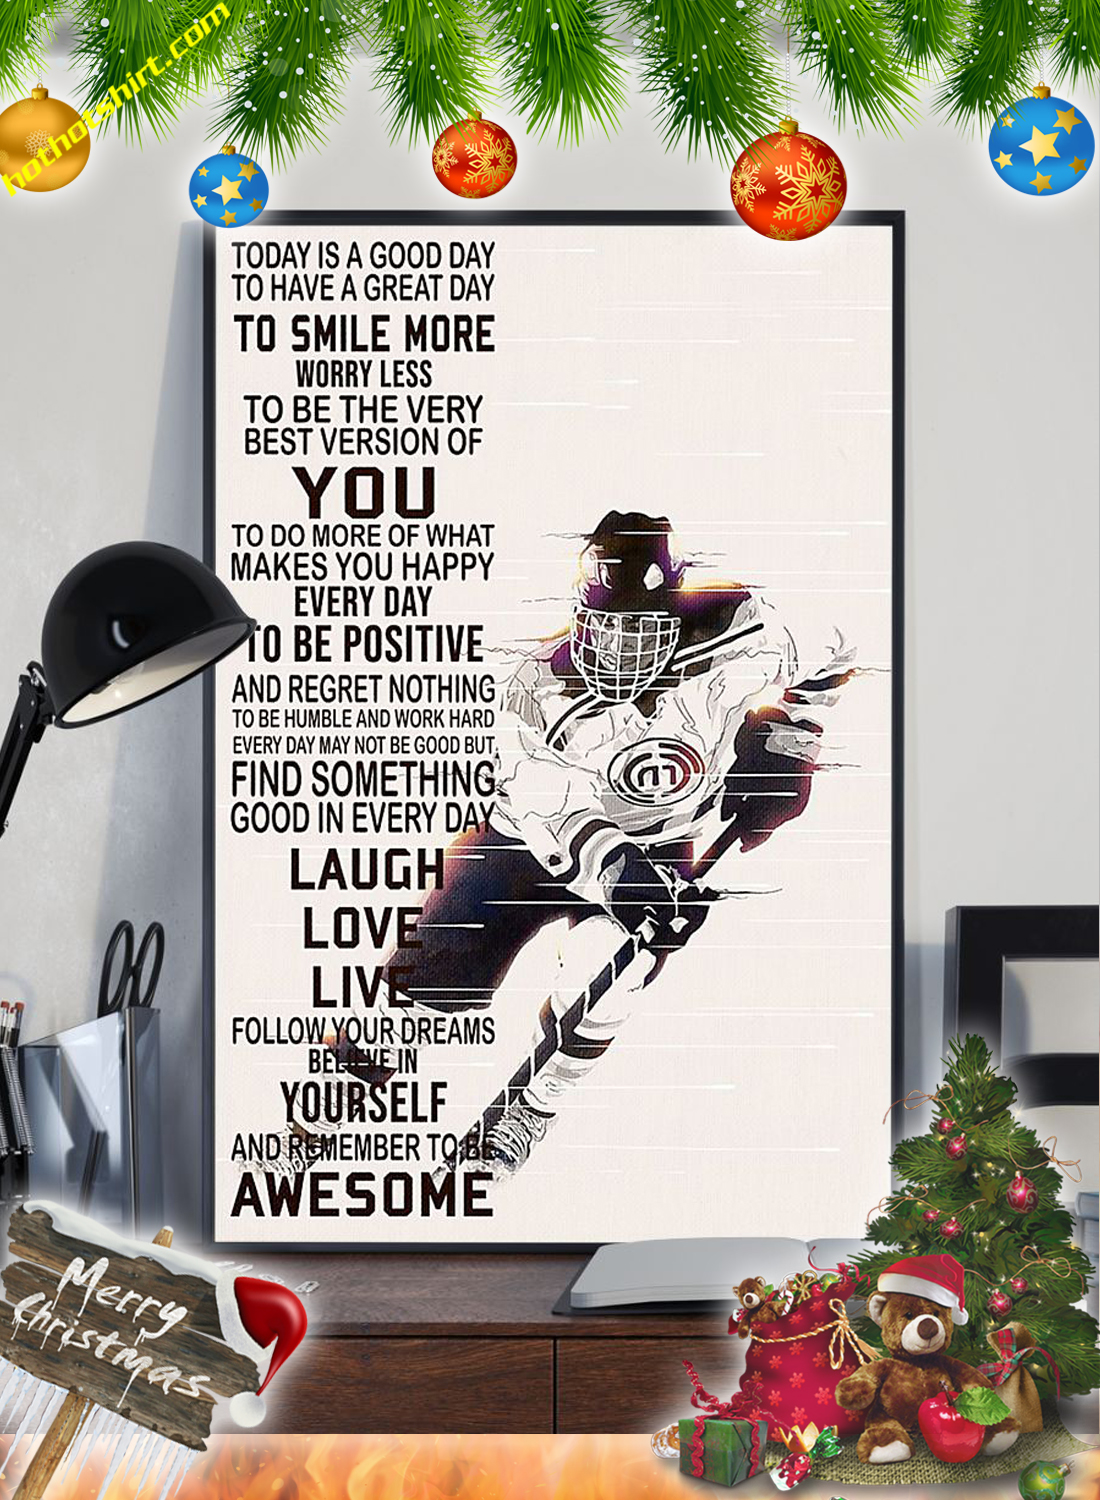 Hockey Today is a good day poster 1